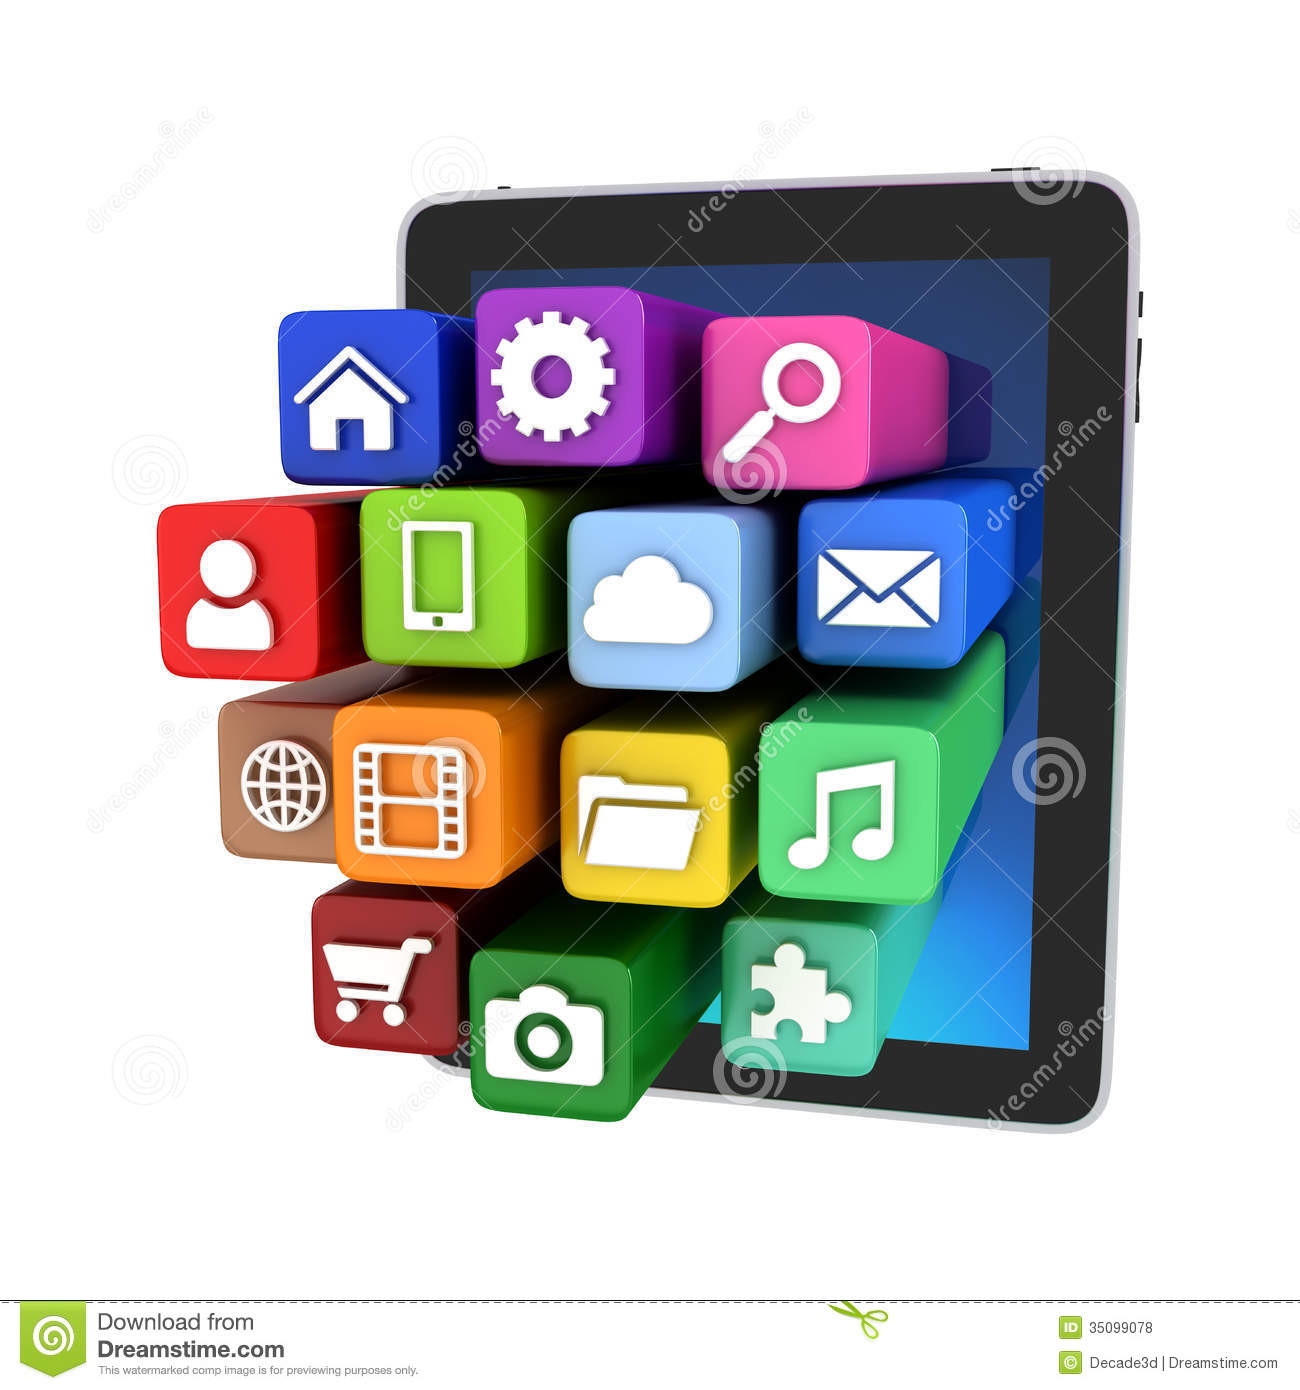 10 Tablet App Icon Images